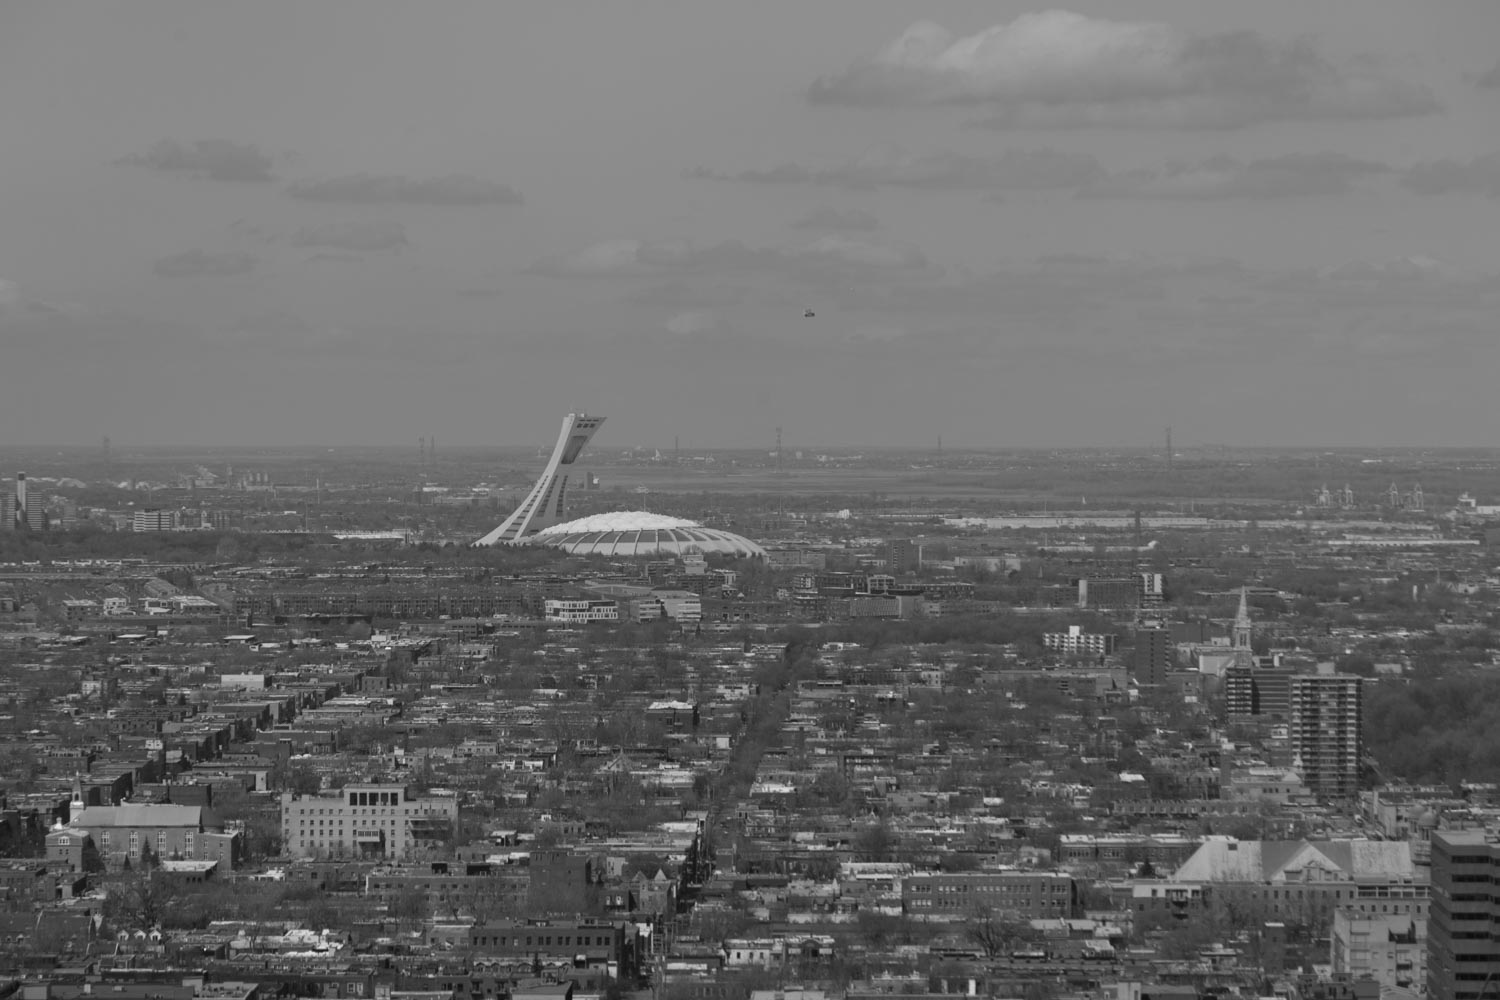 monochrome image of Montreal - How to Use Low Graphic Style as a Compositional Tool